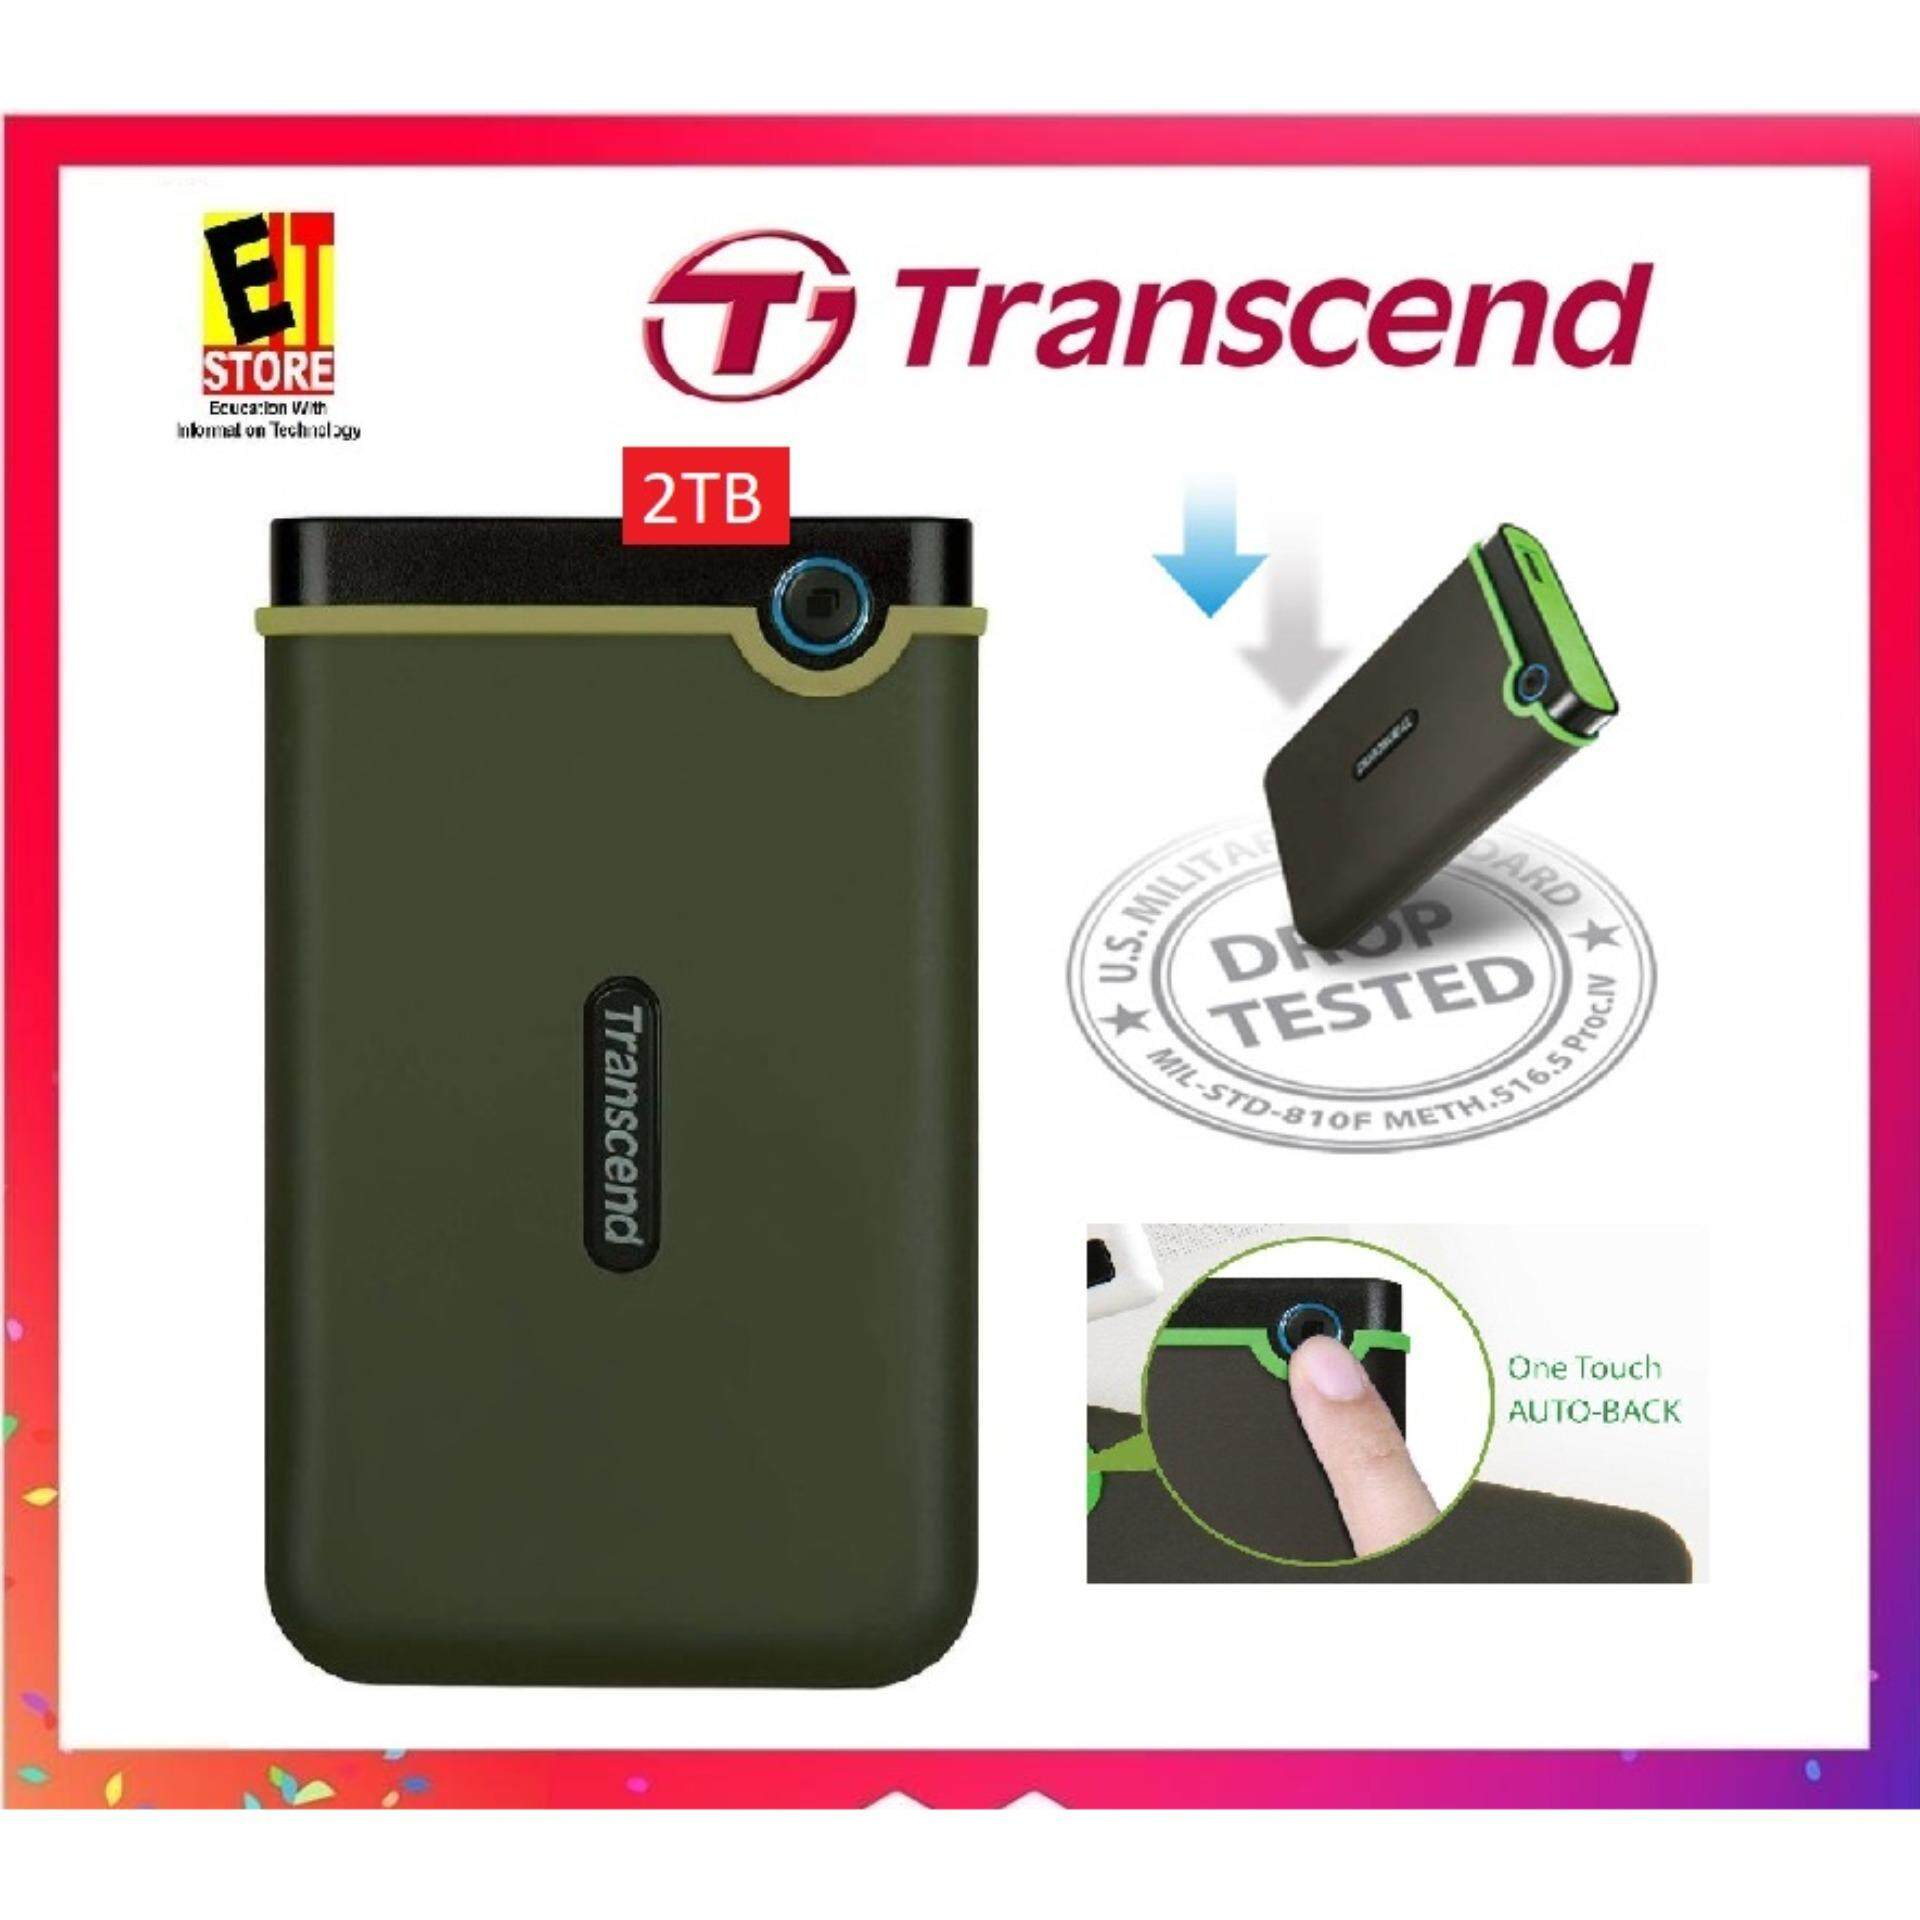 External Hard Drives Disk With Best Price In Malaysia Orico 2588us3 Hdd Harddisk Enclosure 25 Inch Portable Super Speed Usb 30 Transcend Storejet 25m3 Slim 2tb Shockproof Ts2tsj25m3g Military Green